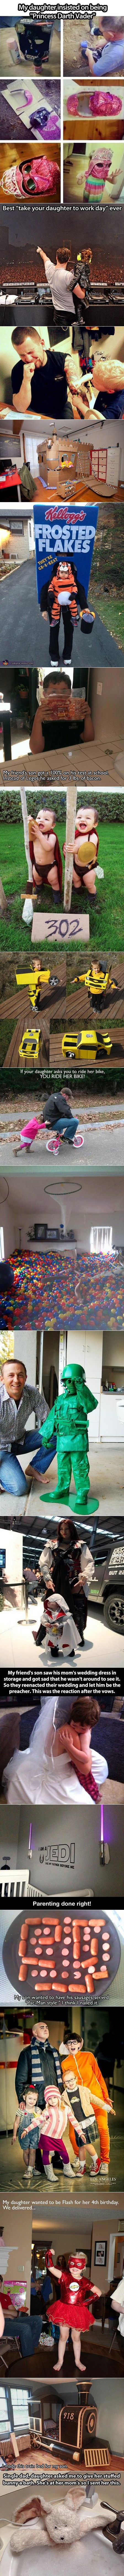 Geeky parents who are doing it right.